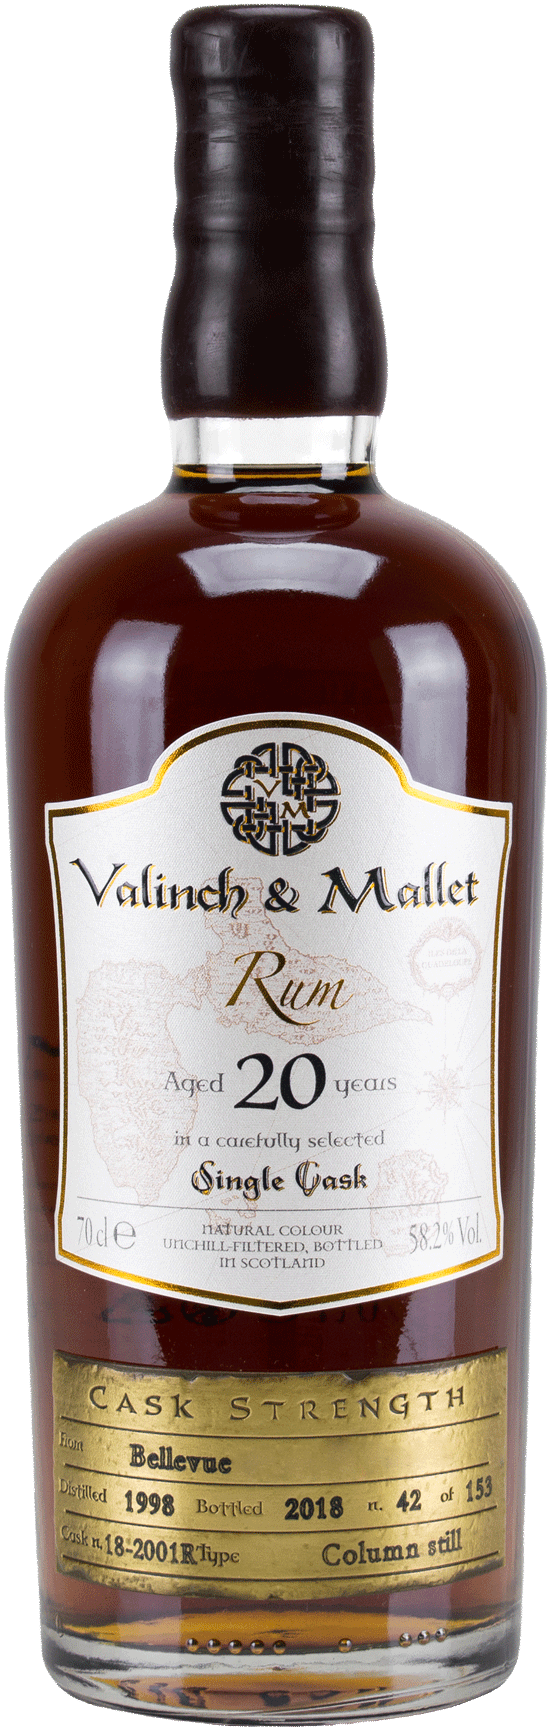 Bellevue Valinch & Mallet Traditional Rum